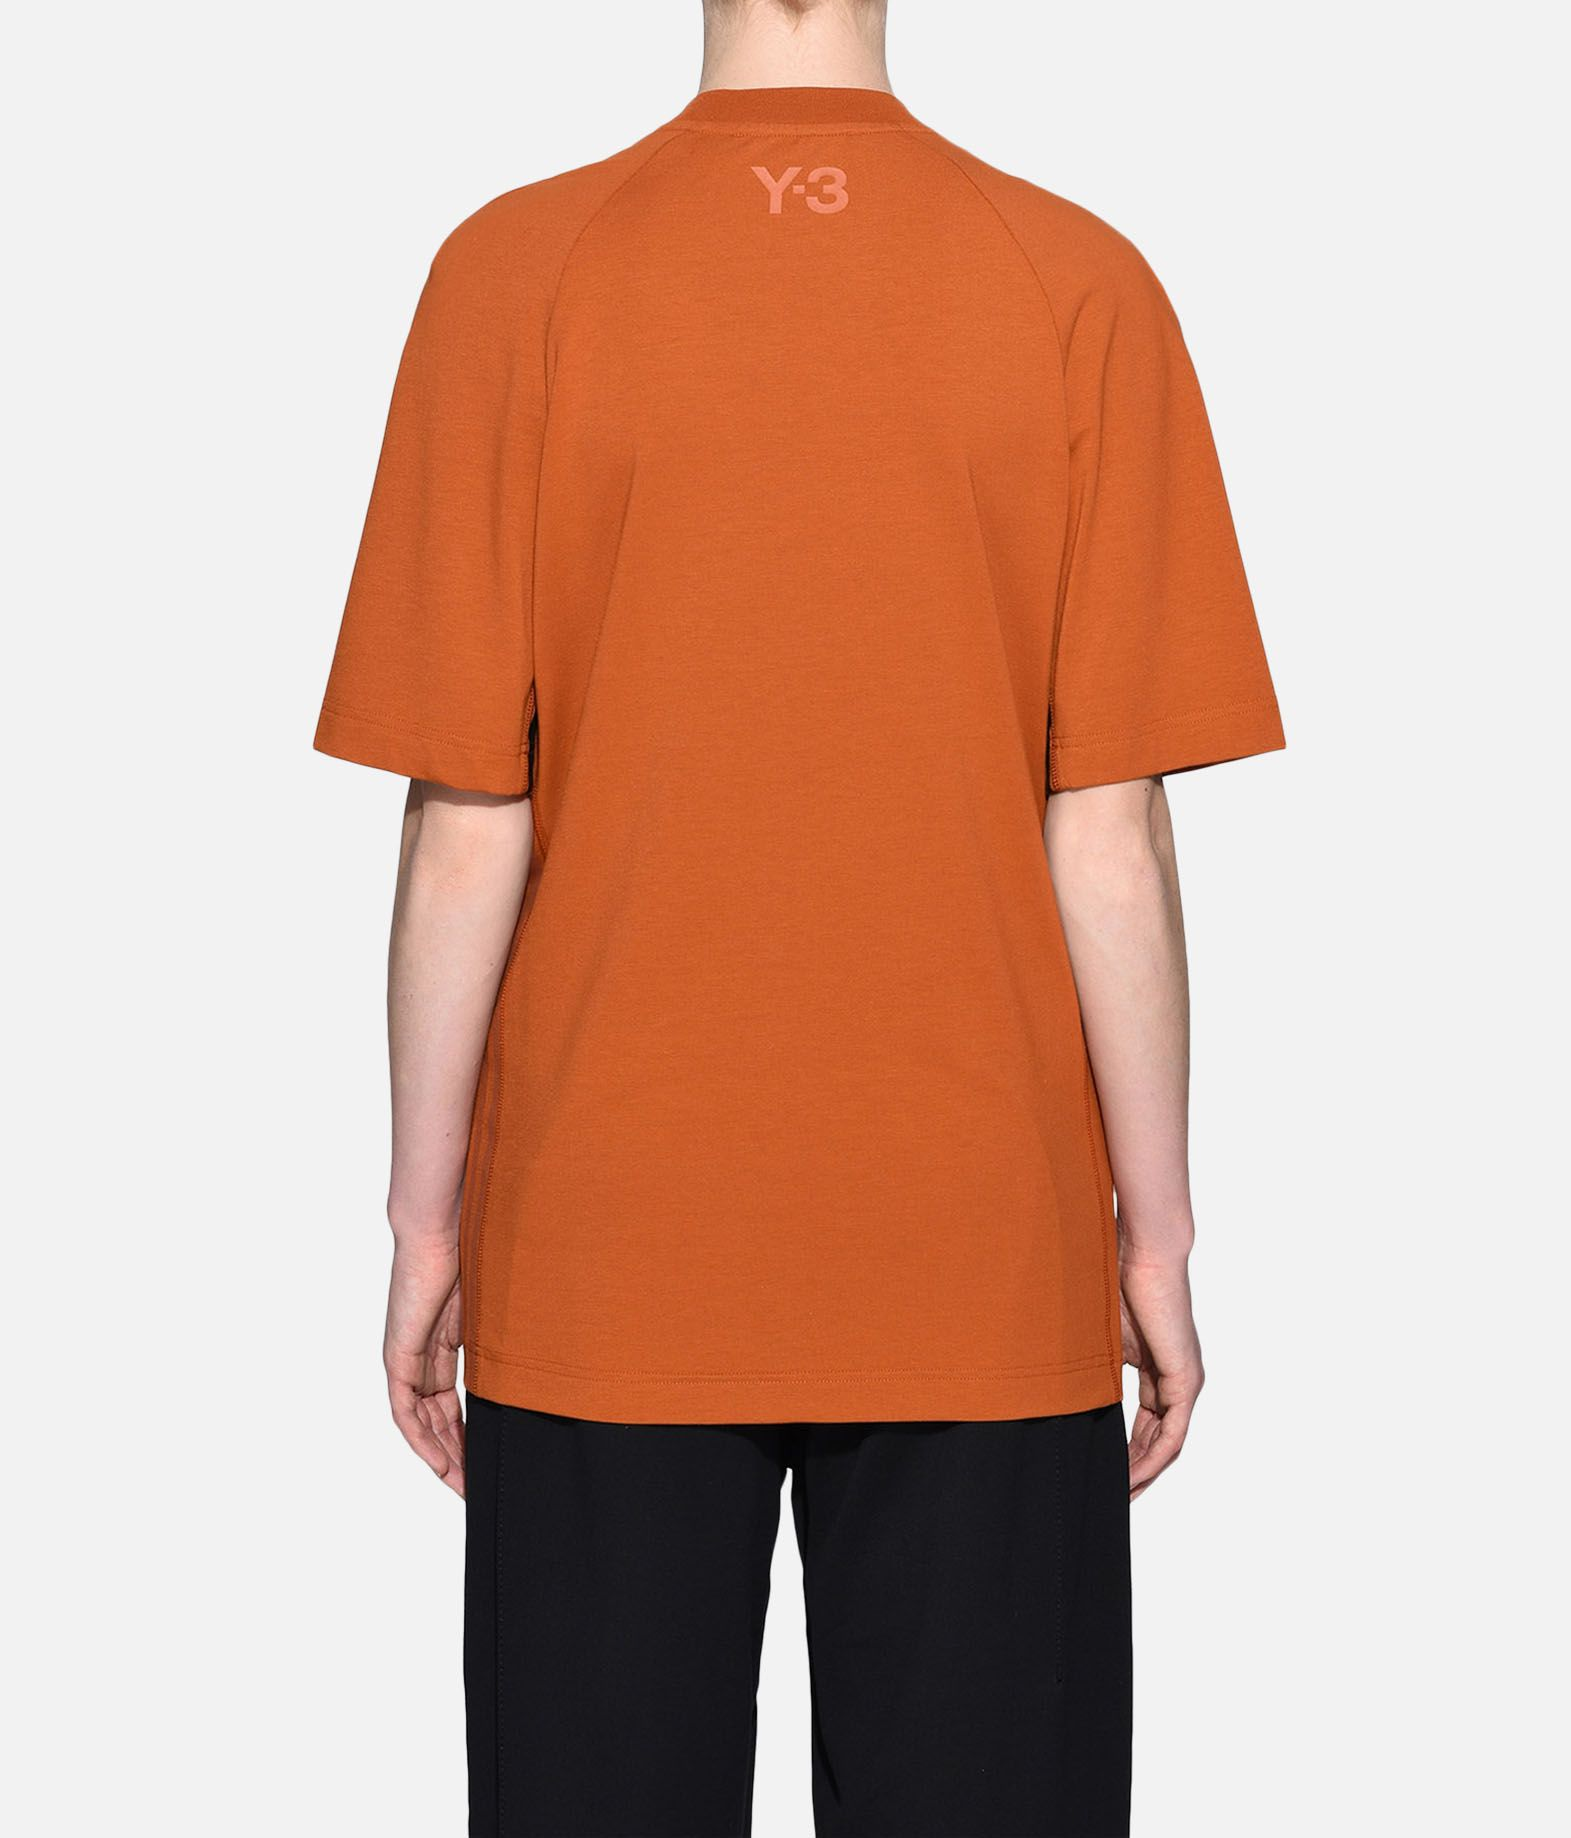 Y-3 Y-3 3-Stripes Tee Short sleeve t-shirt Woman d